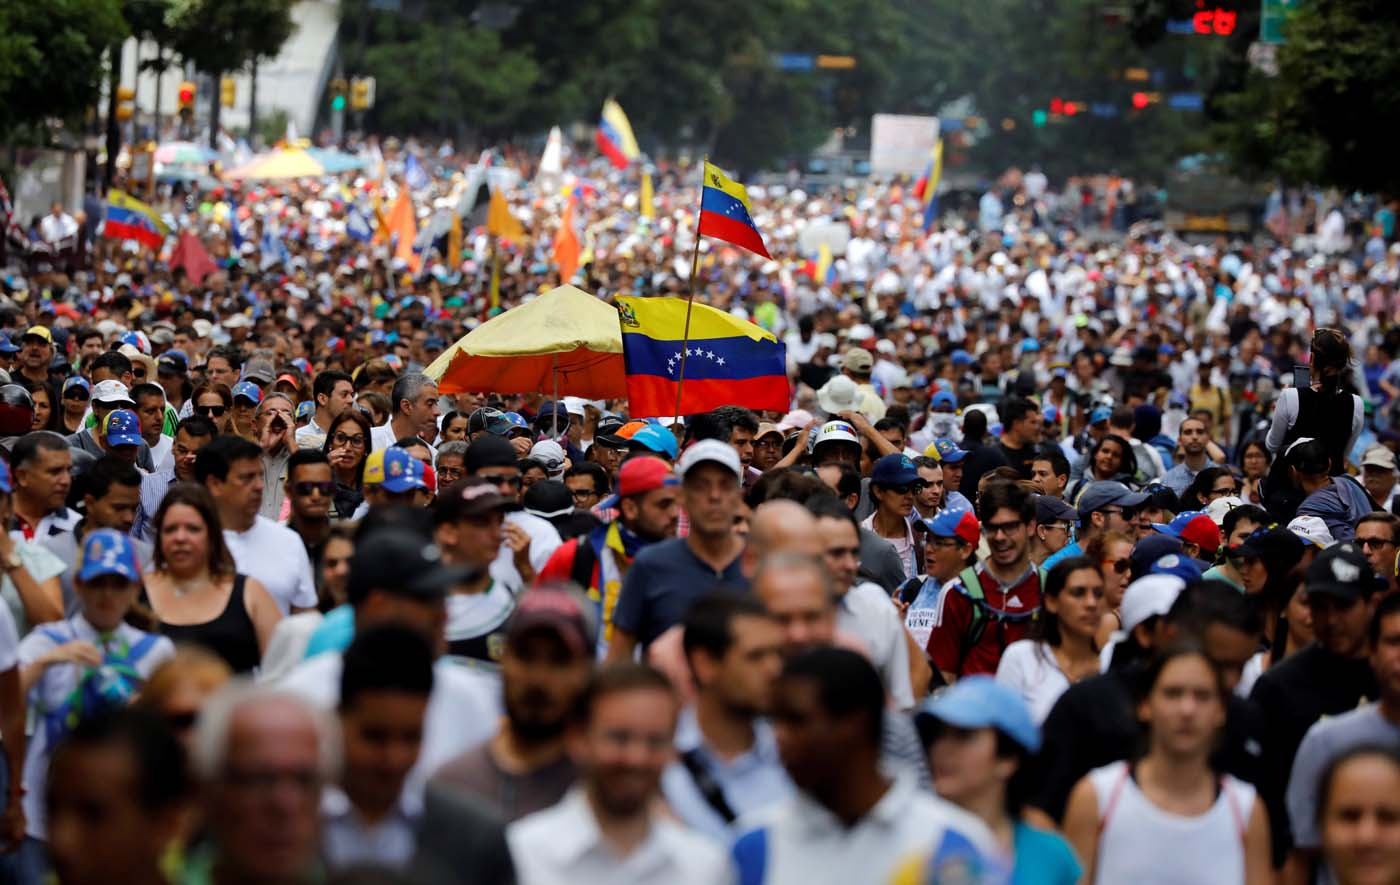 Opposition supporters march during a rally against Venezuelan President Nicolas Maduro's government in Caracas, Venezuela June 22, 2017. REUTERS/Carlos Garcia Rawlins